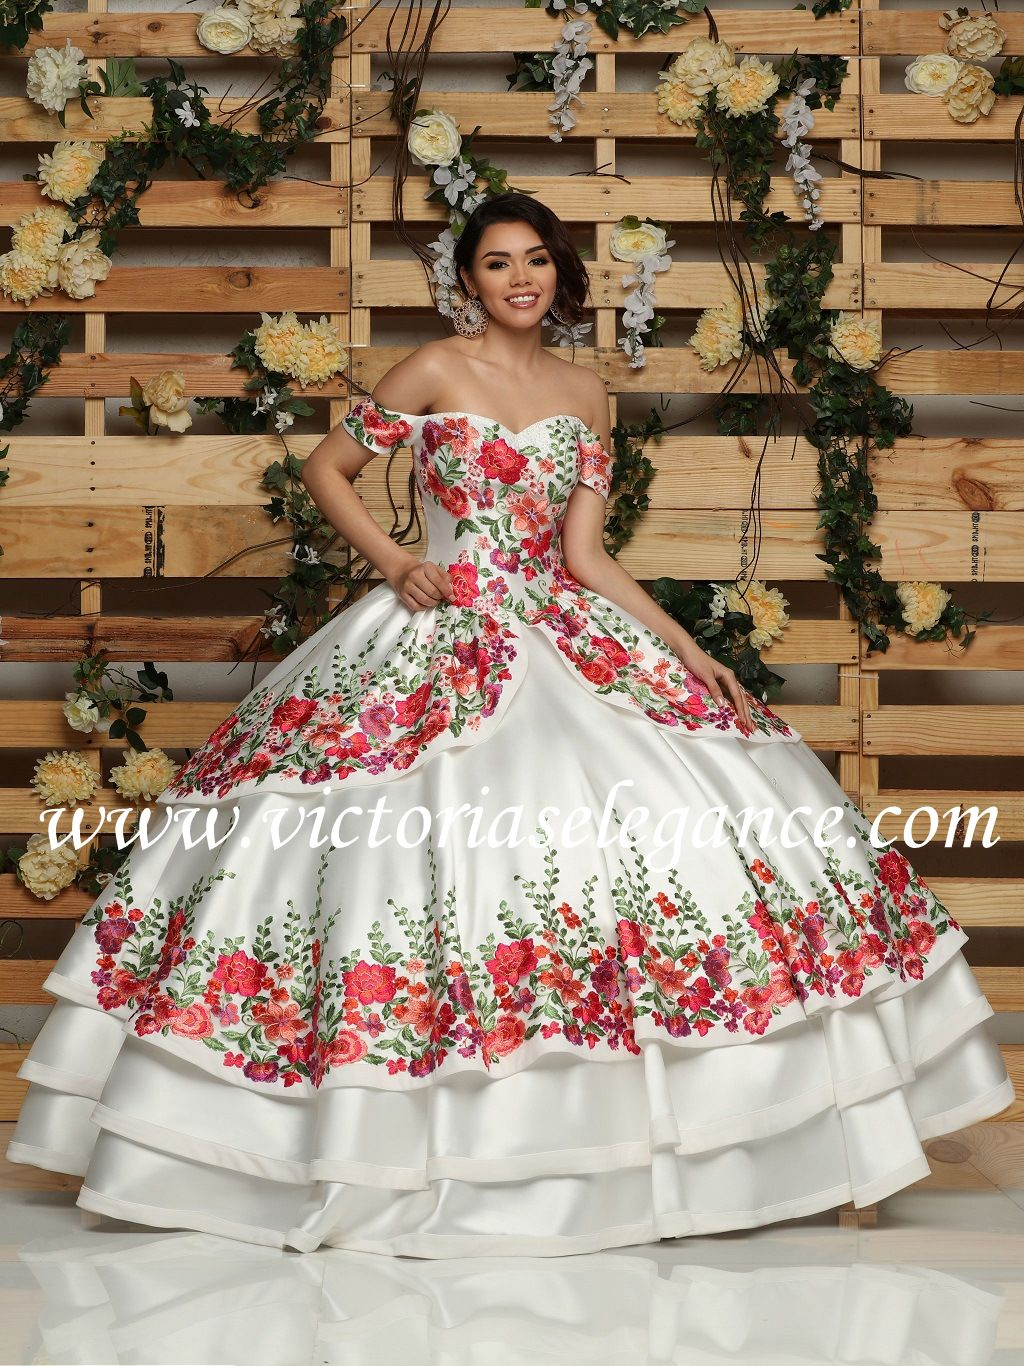 40ffd3f89fff Mikado Charro dress w/embroidered appliques throughout the bodice & skirt  of the dress; lace-up back, short cape included